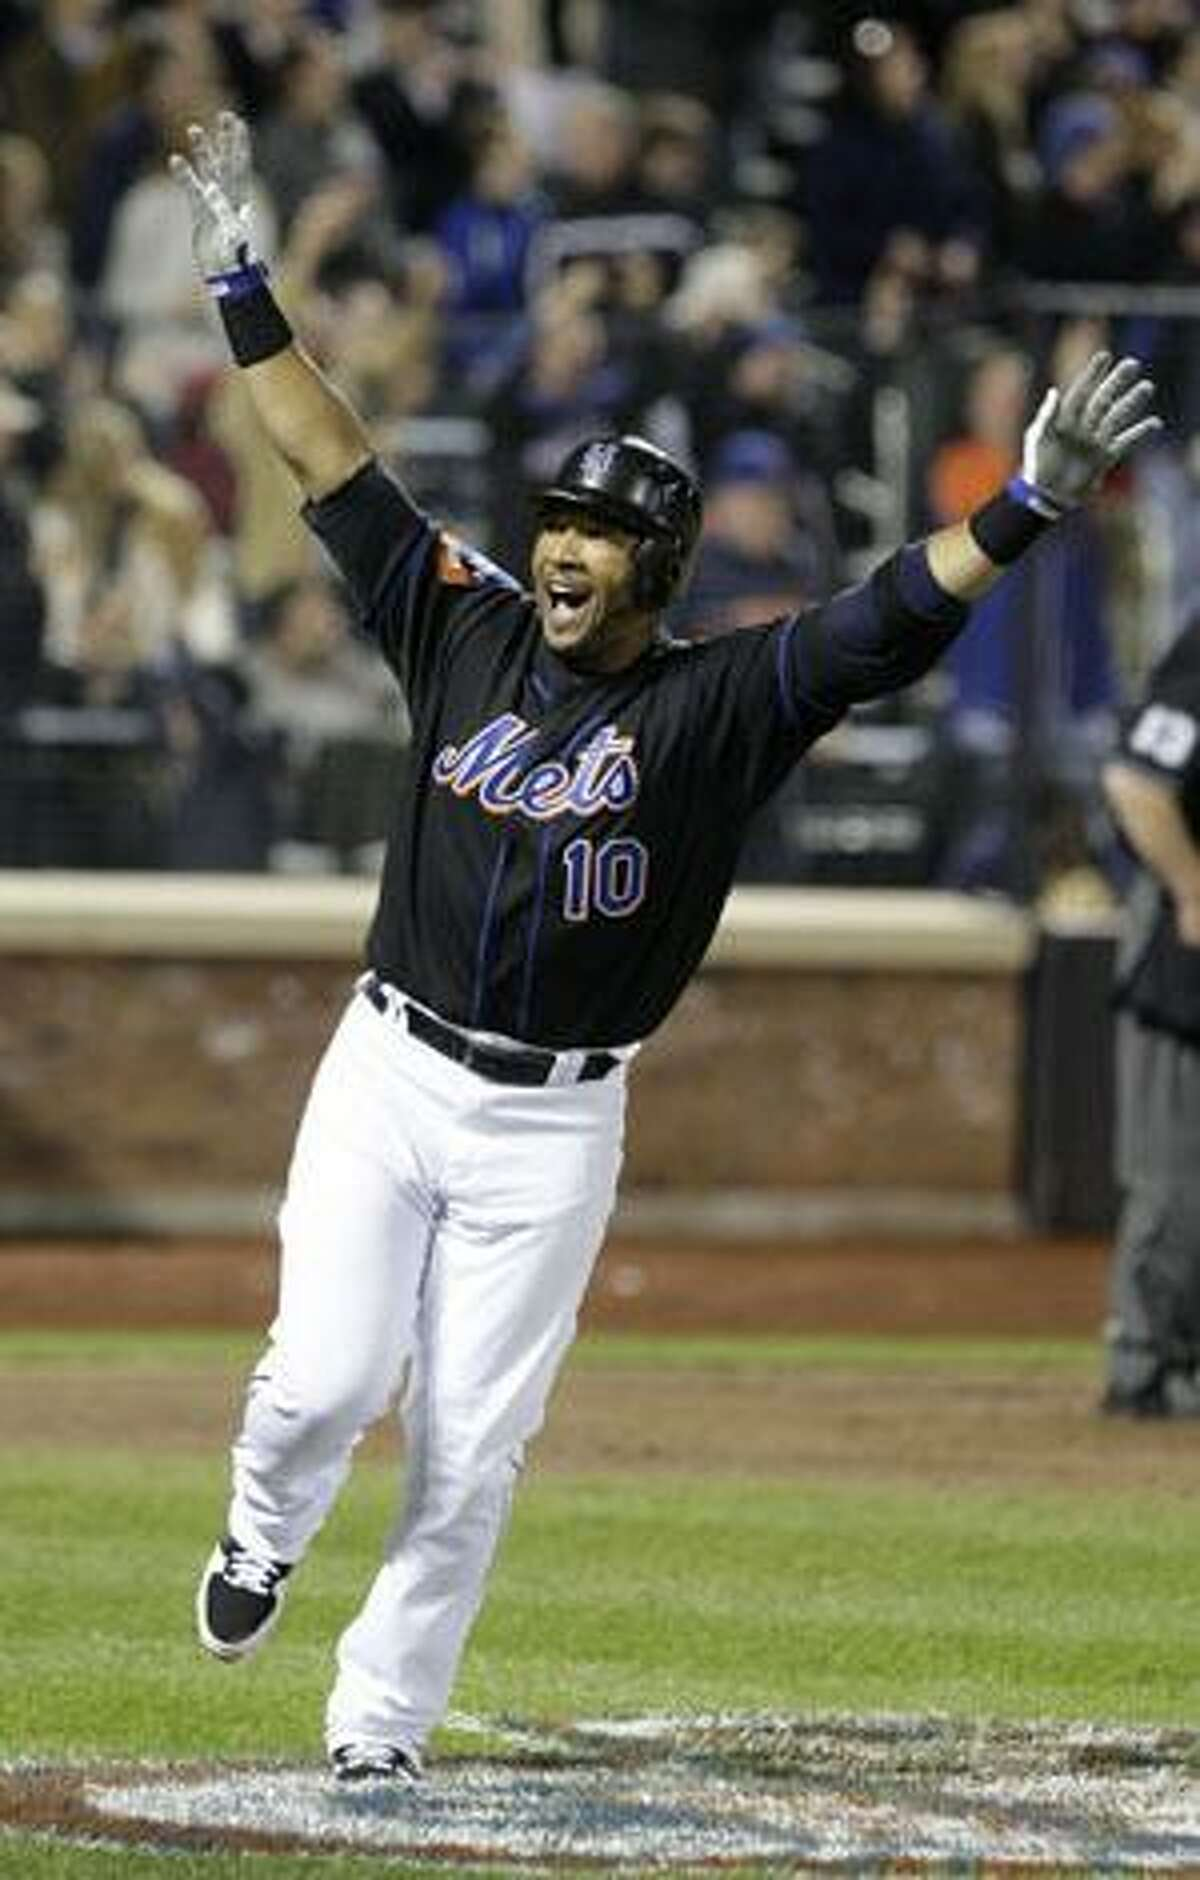 New York Mets' Gary Sheffield (10) reacts after hitting his 500th home run during the seventh inning of a game against the Milwaukee Brewers Friday in New York. (AP Photo/Frank Franklin II)